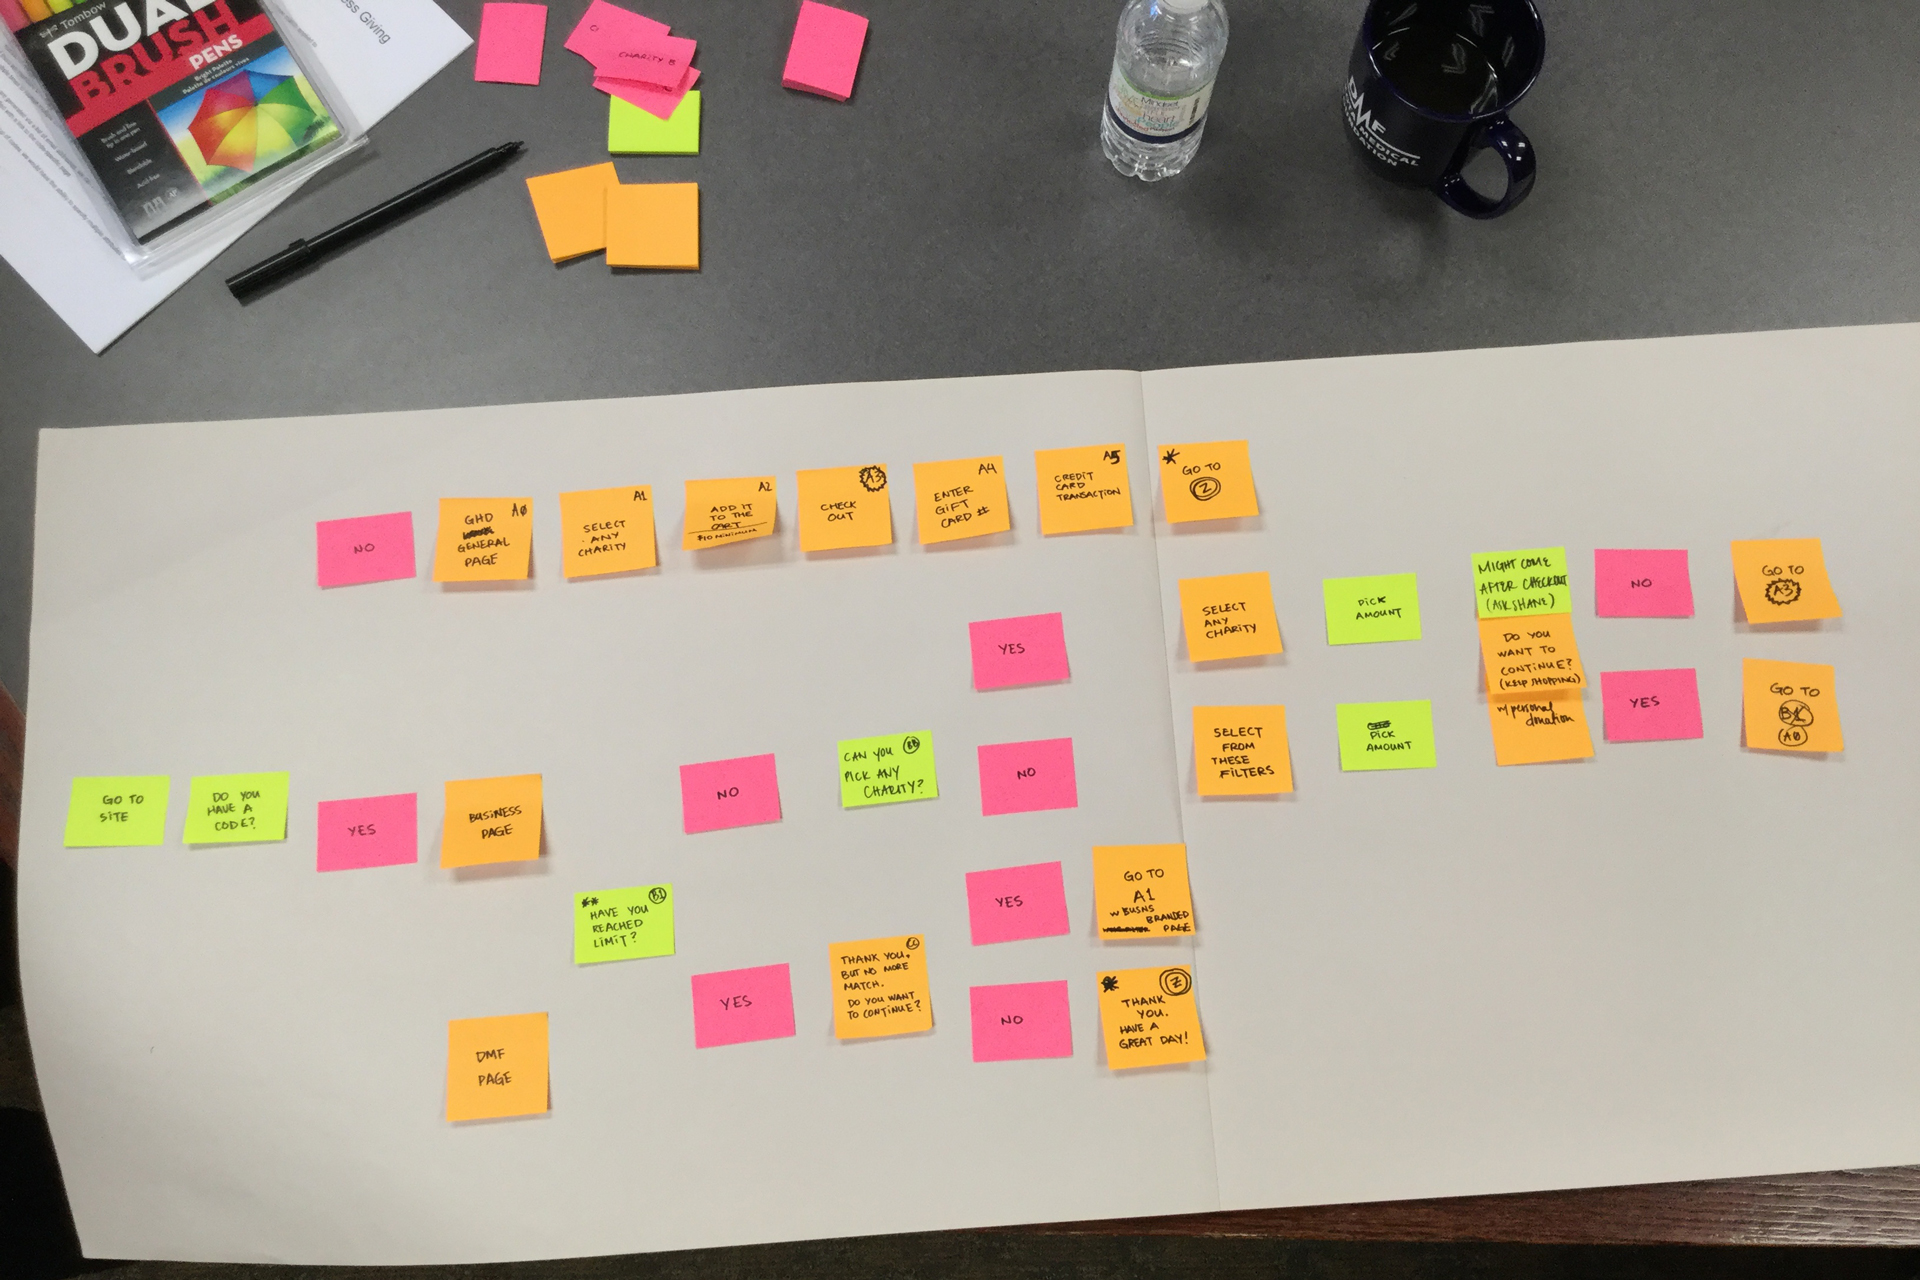 Orange, pink, and yellow post-it notes on a tan paper pad outlining user experience flow